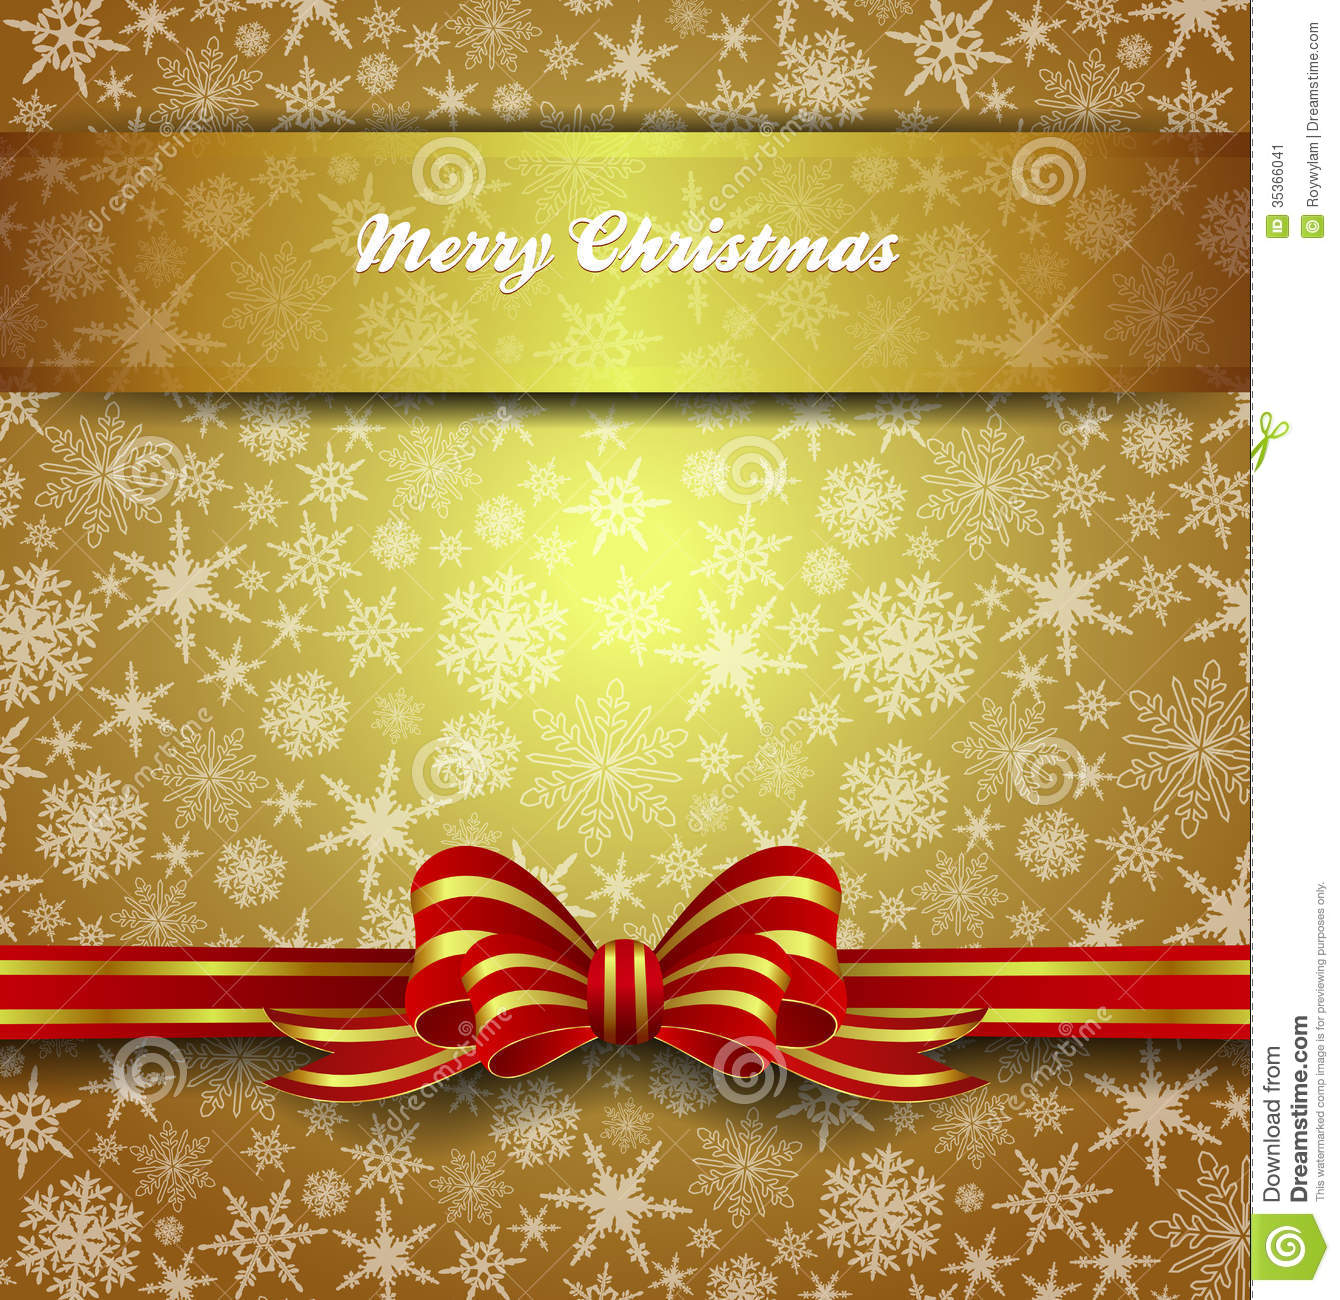 Free Download Of Christmas Wallpaper With Snow Falling Merry Christmas Card Snowflakes Gold Background Stock